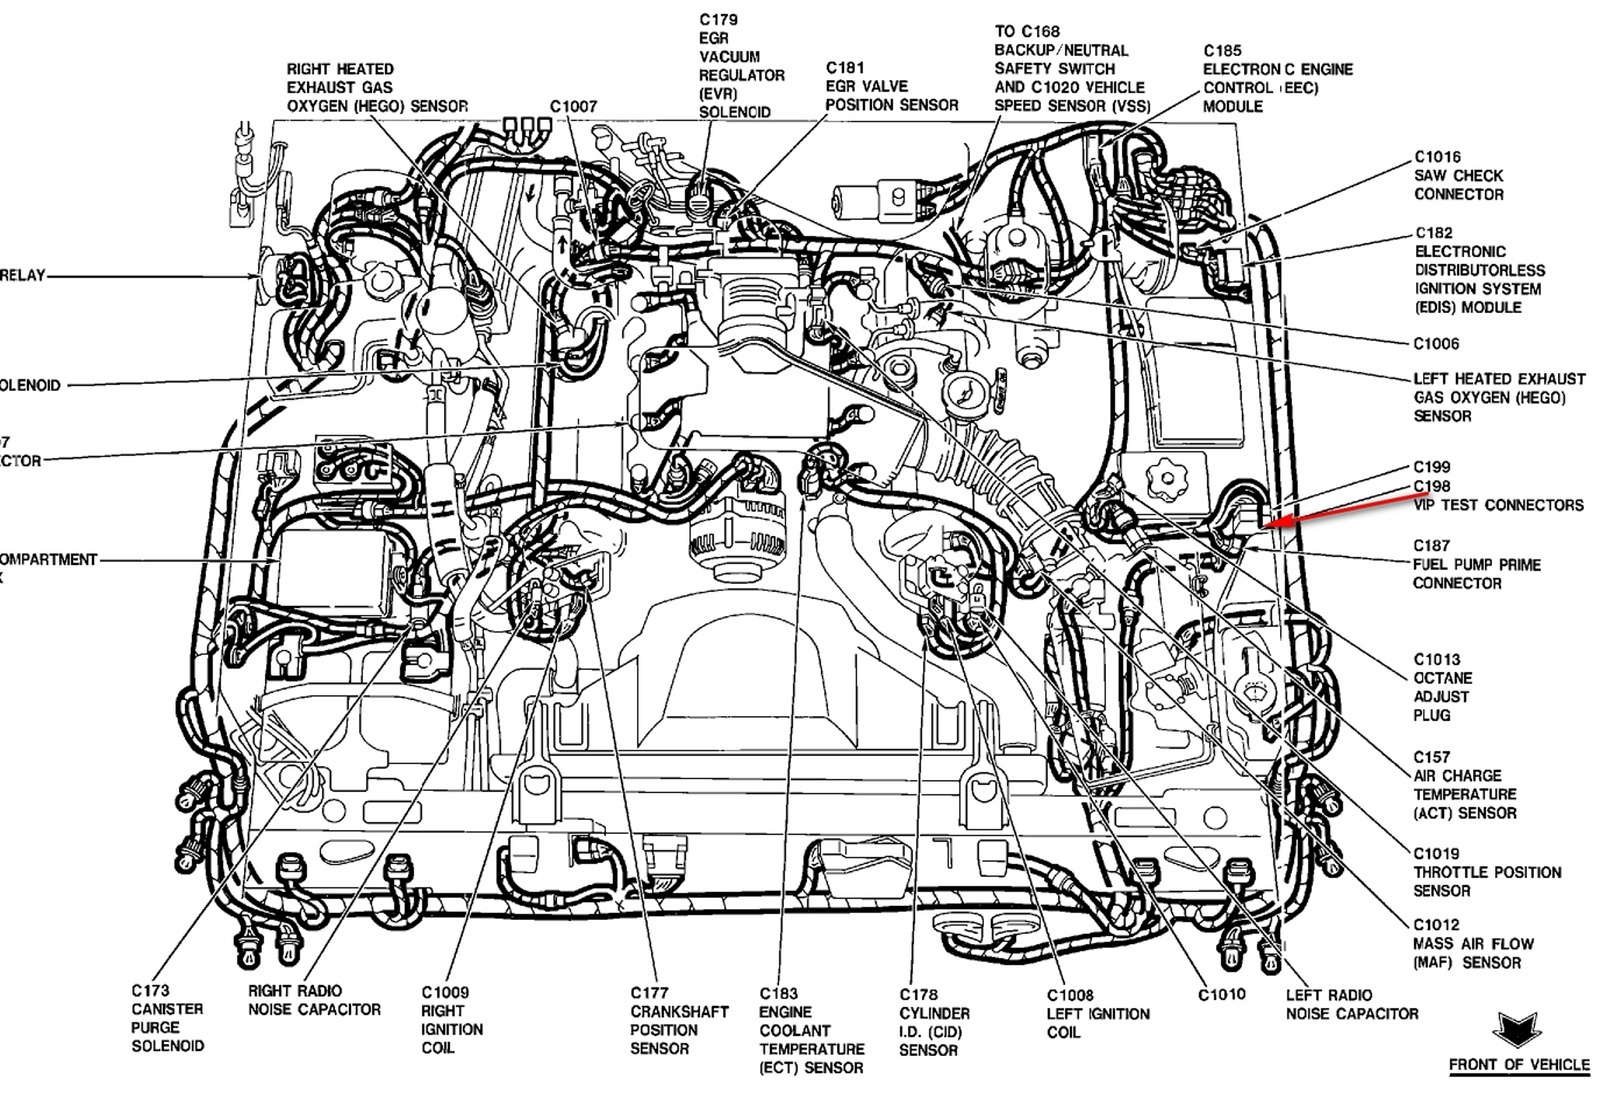 2000 crown victoria engine diagram wiring diagram write rh 18 asxcv bolonka zwetna von der laisbach de